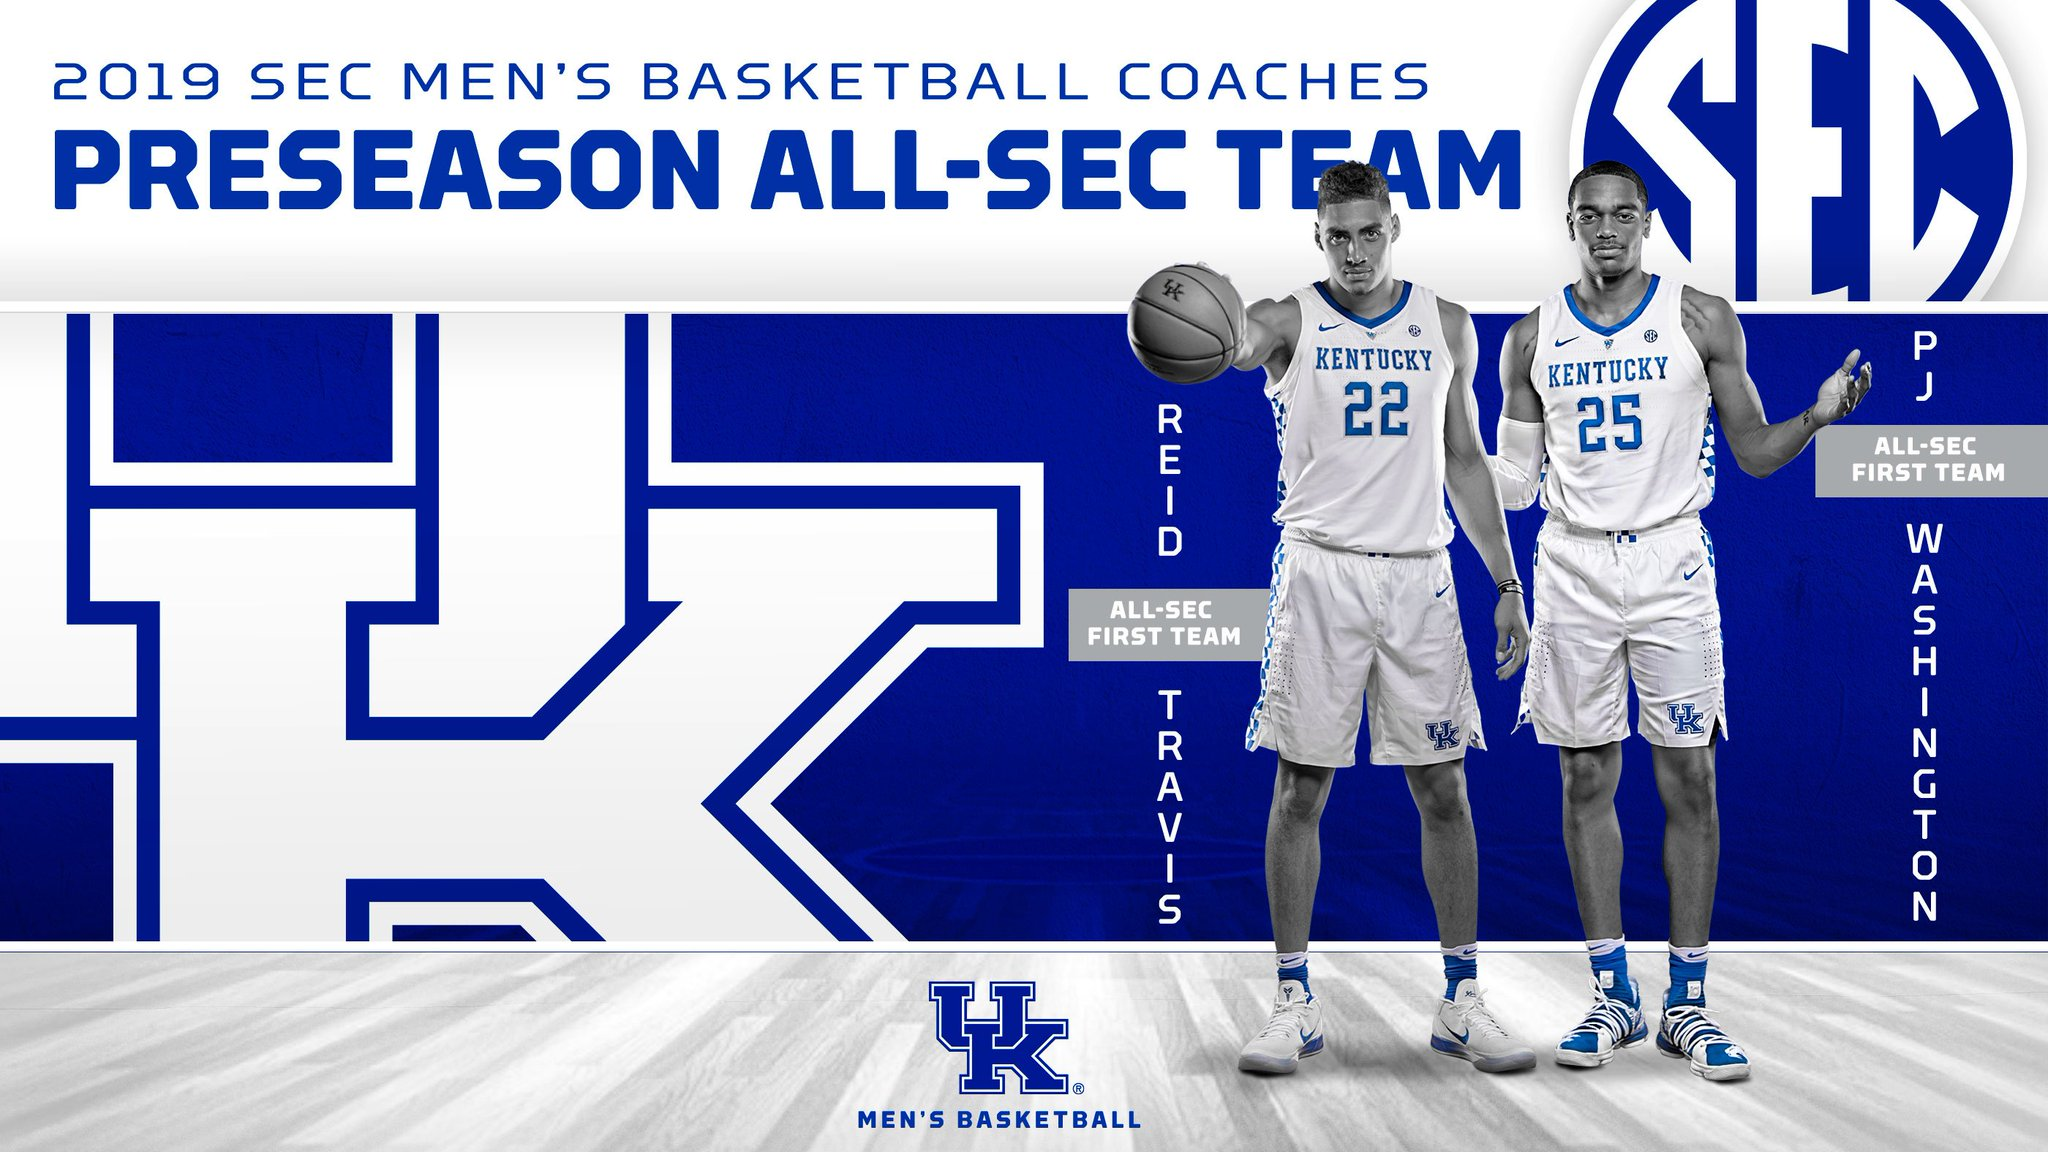 Kentucky Basketball On Twitter Our Frontcourt Duo Of